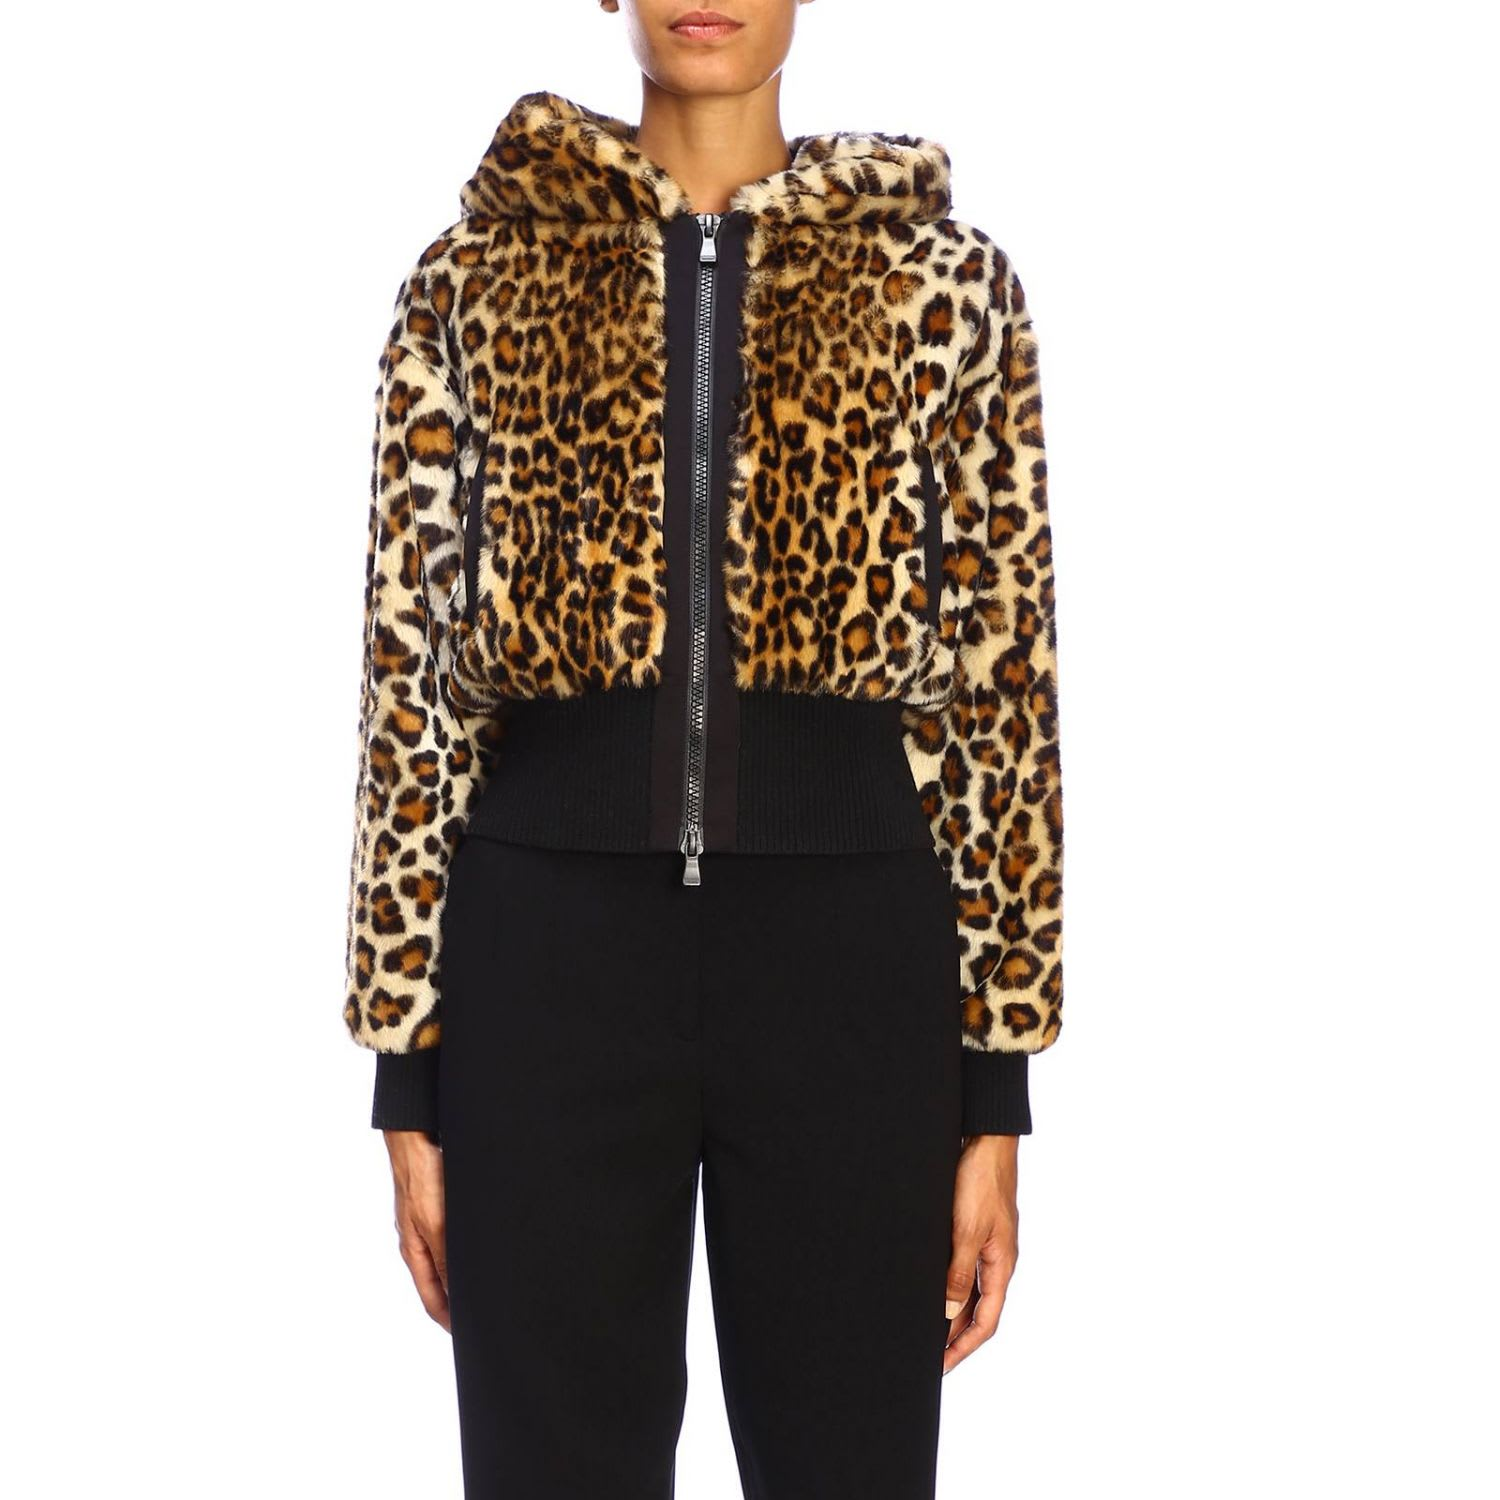 Boutique Moschino Jacket Jacket Women Boutique Moschino